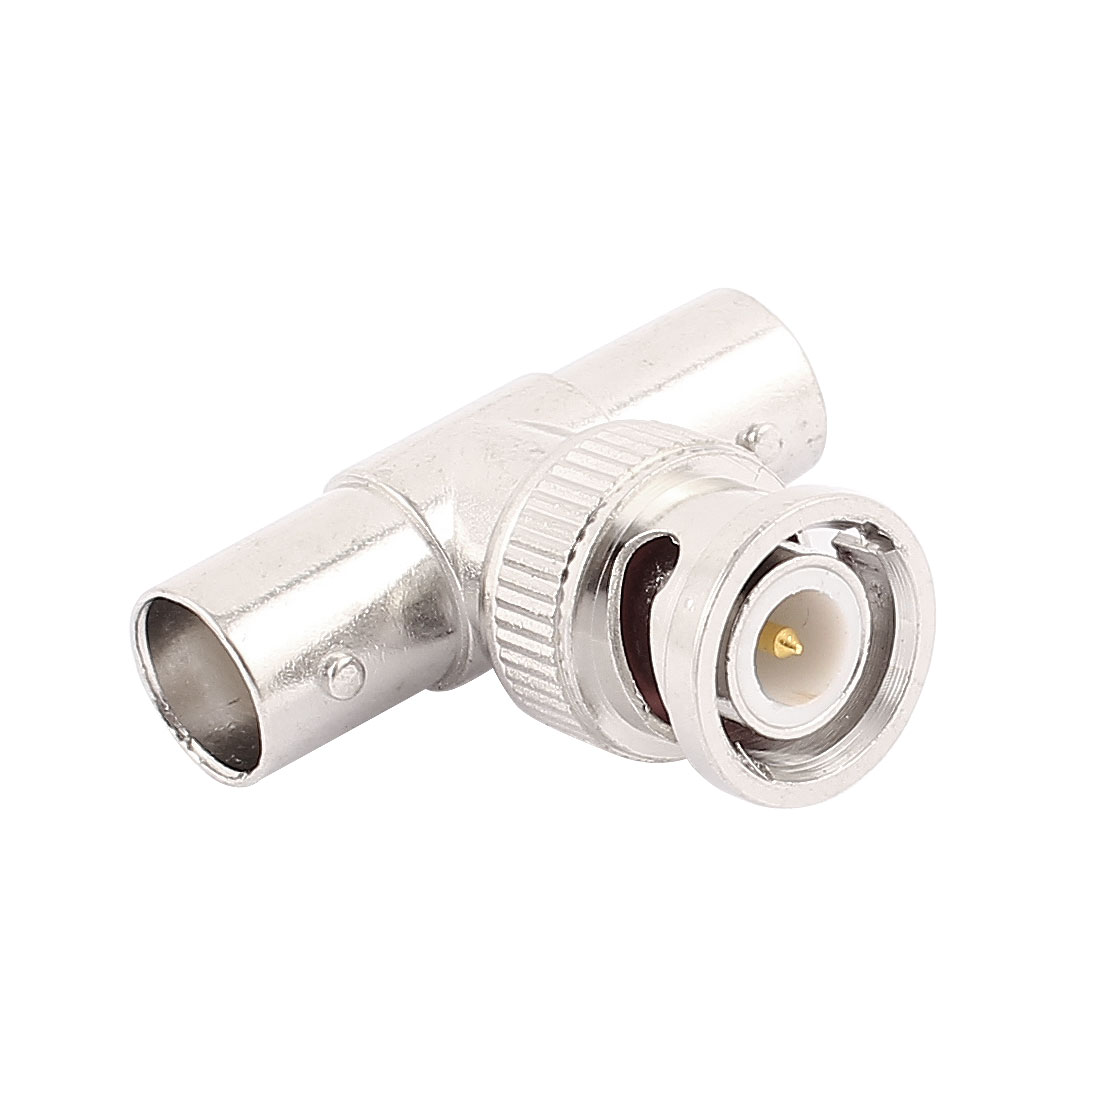 BNC Q9 3 Way T Connector 1 Male to 2 Female Video Adaptor For CCTV Camera